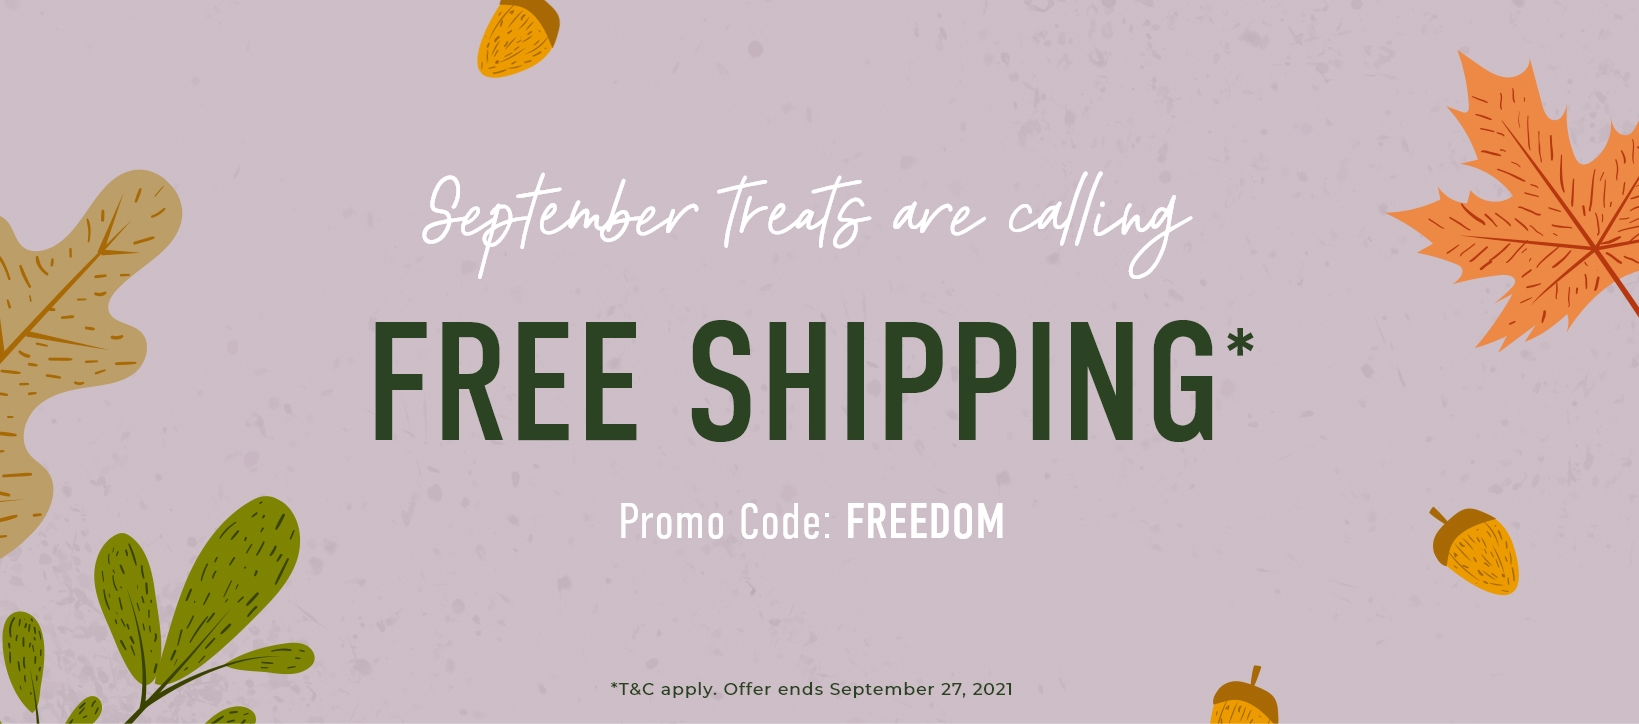 Free Shipping Sale - FREEDOM